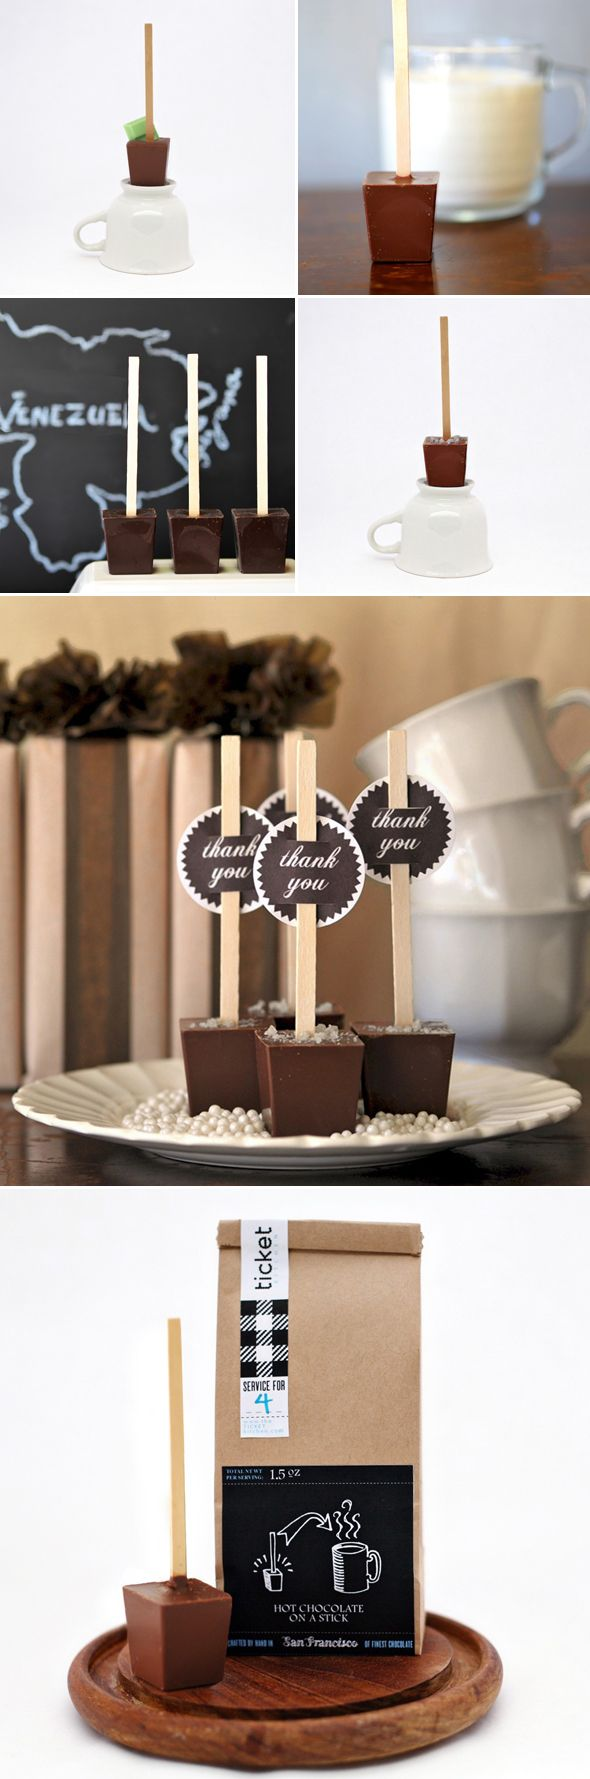 Must try this. TICKET chocolate - hot chocolate on a stick.